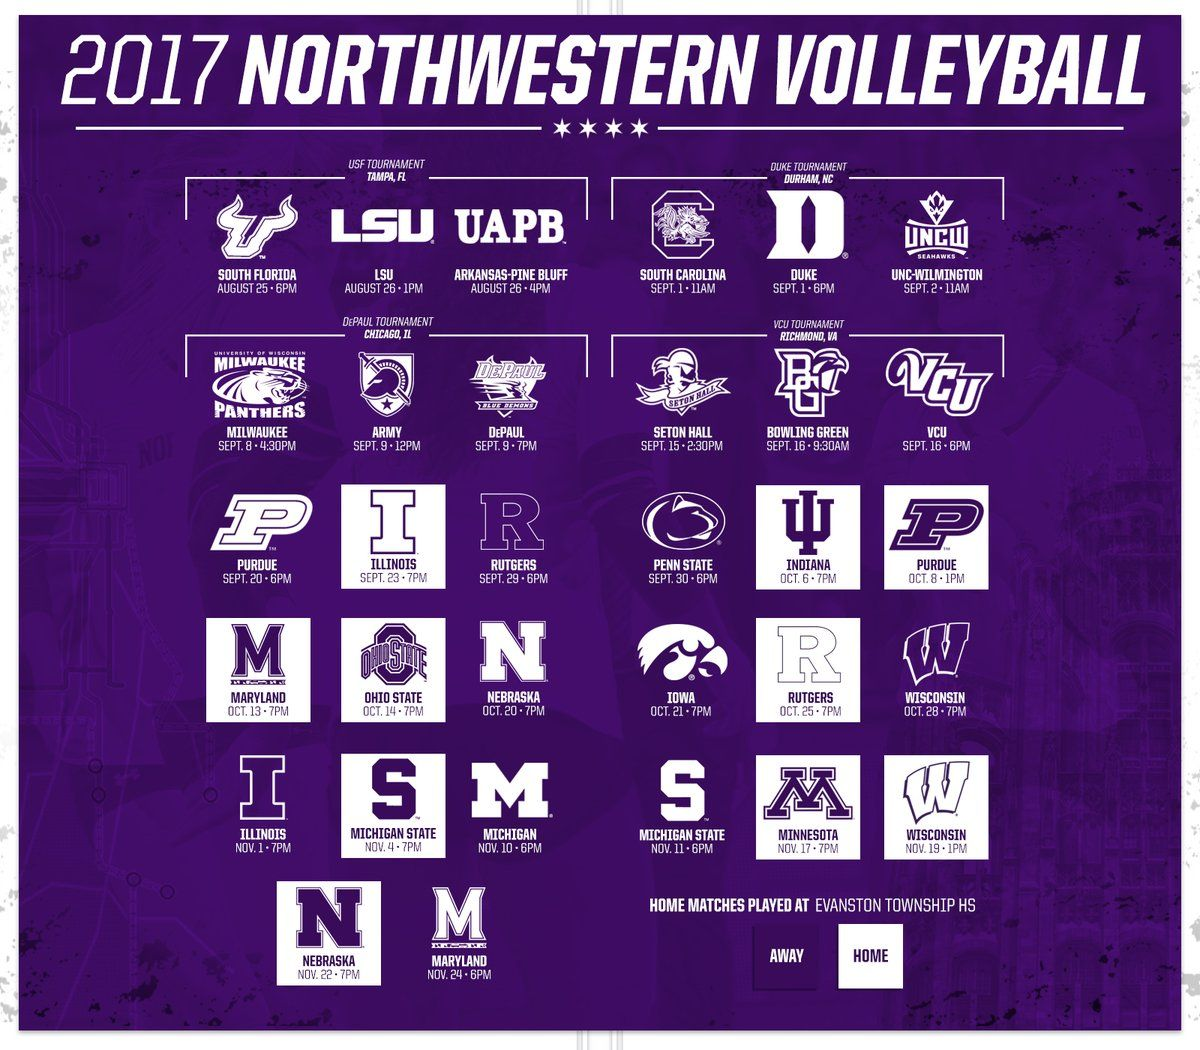 Northwestern Volleyball Poster To Announce Their Schedule At The Start Of The Season Volleyball Posters Sports Design Sports Design Inspiration